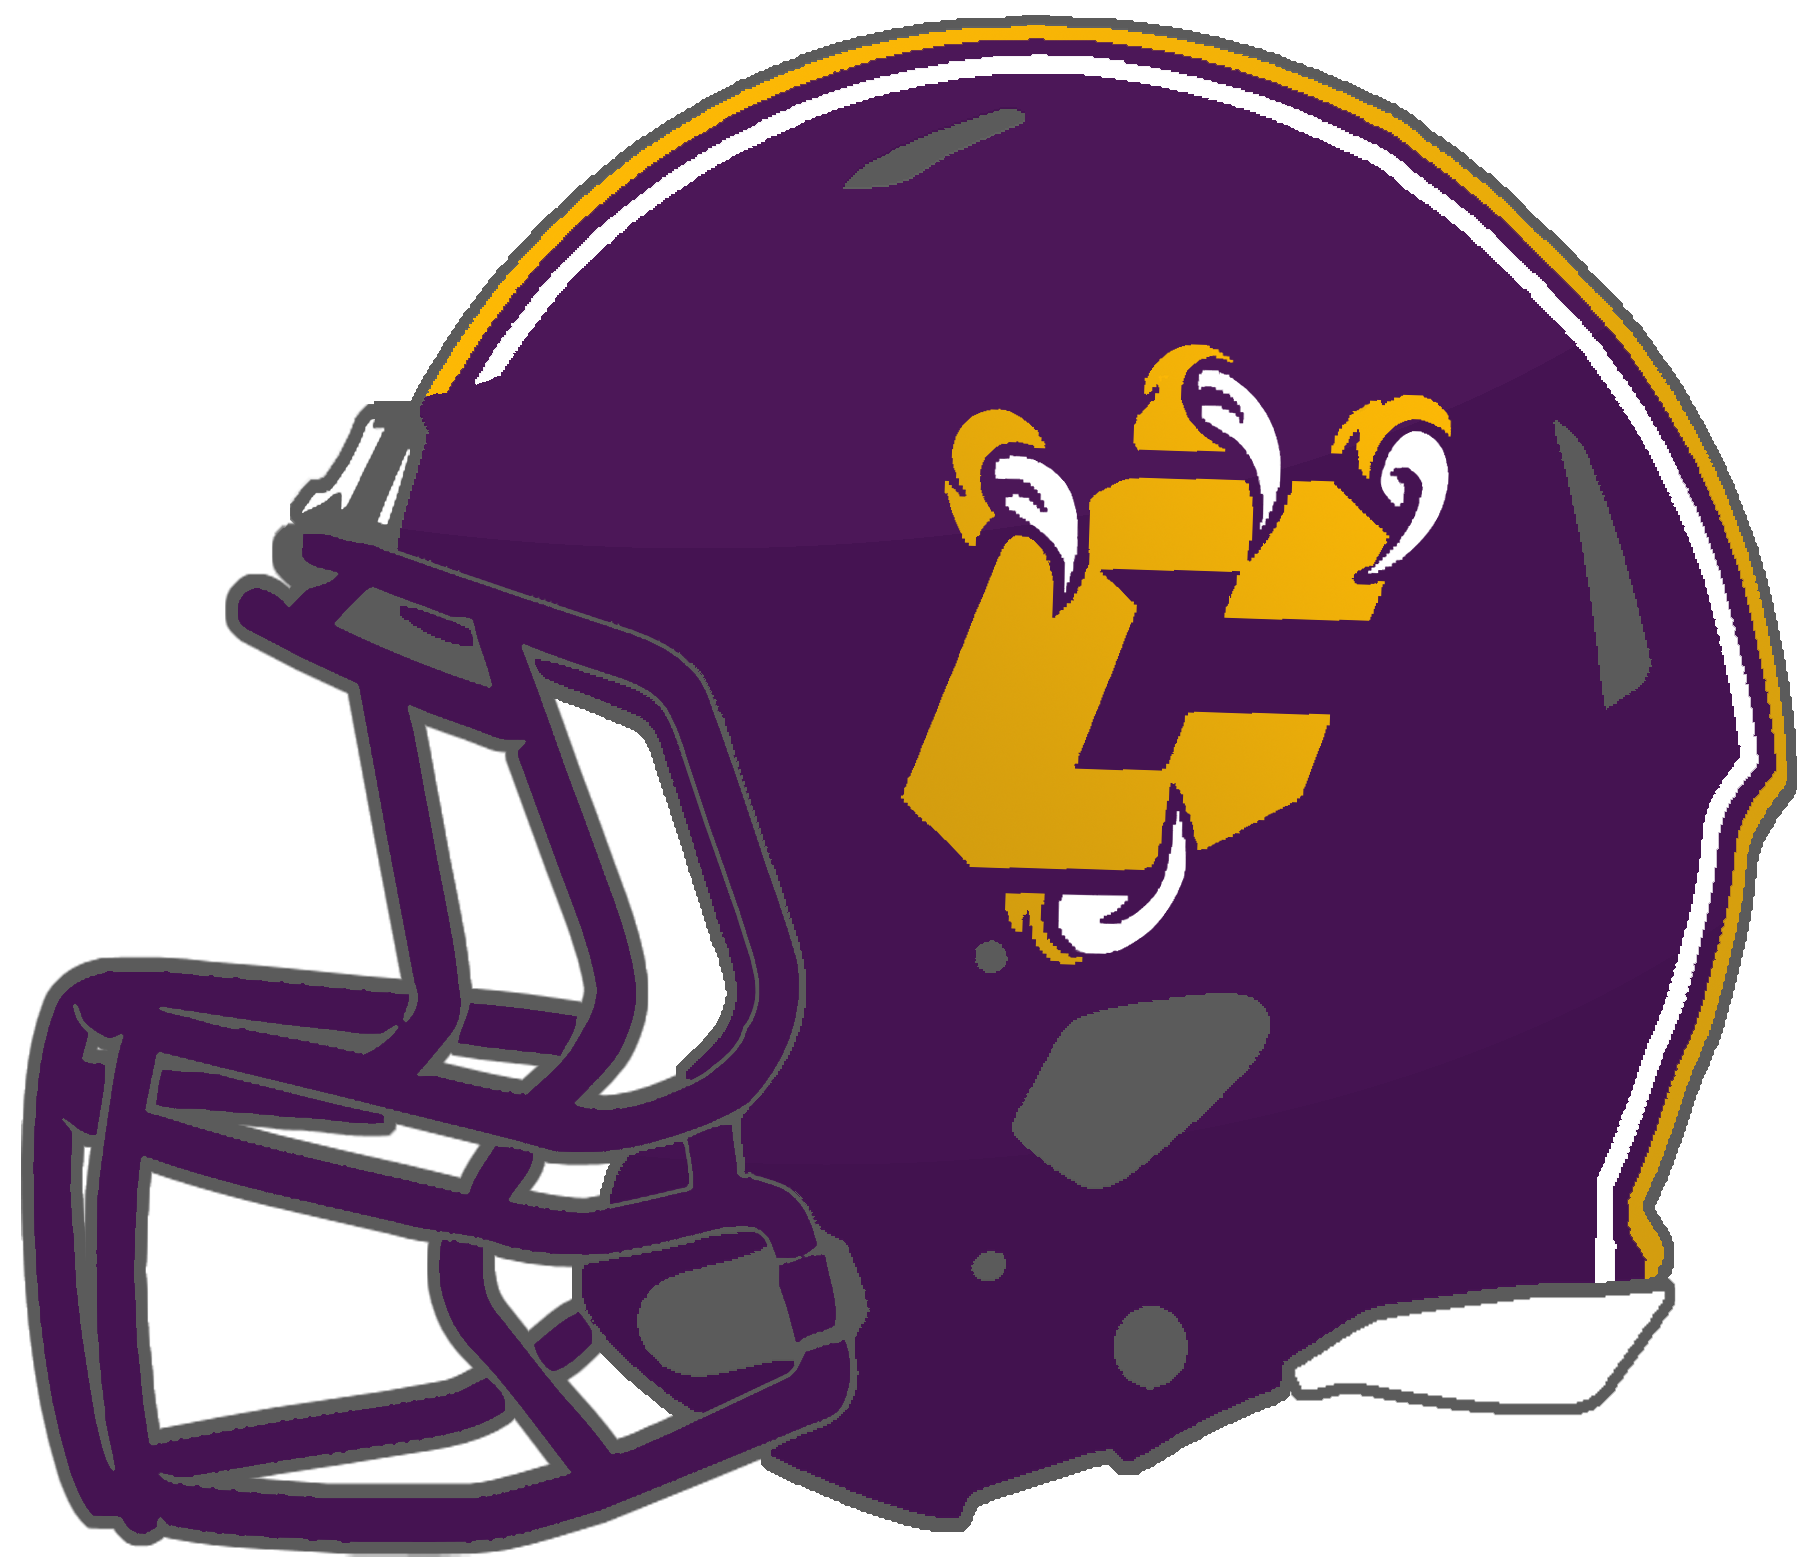 High school football clipart picture library library Mississippi High School Football Helmets: 6A picture library library